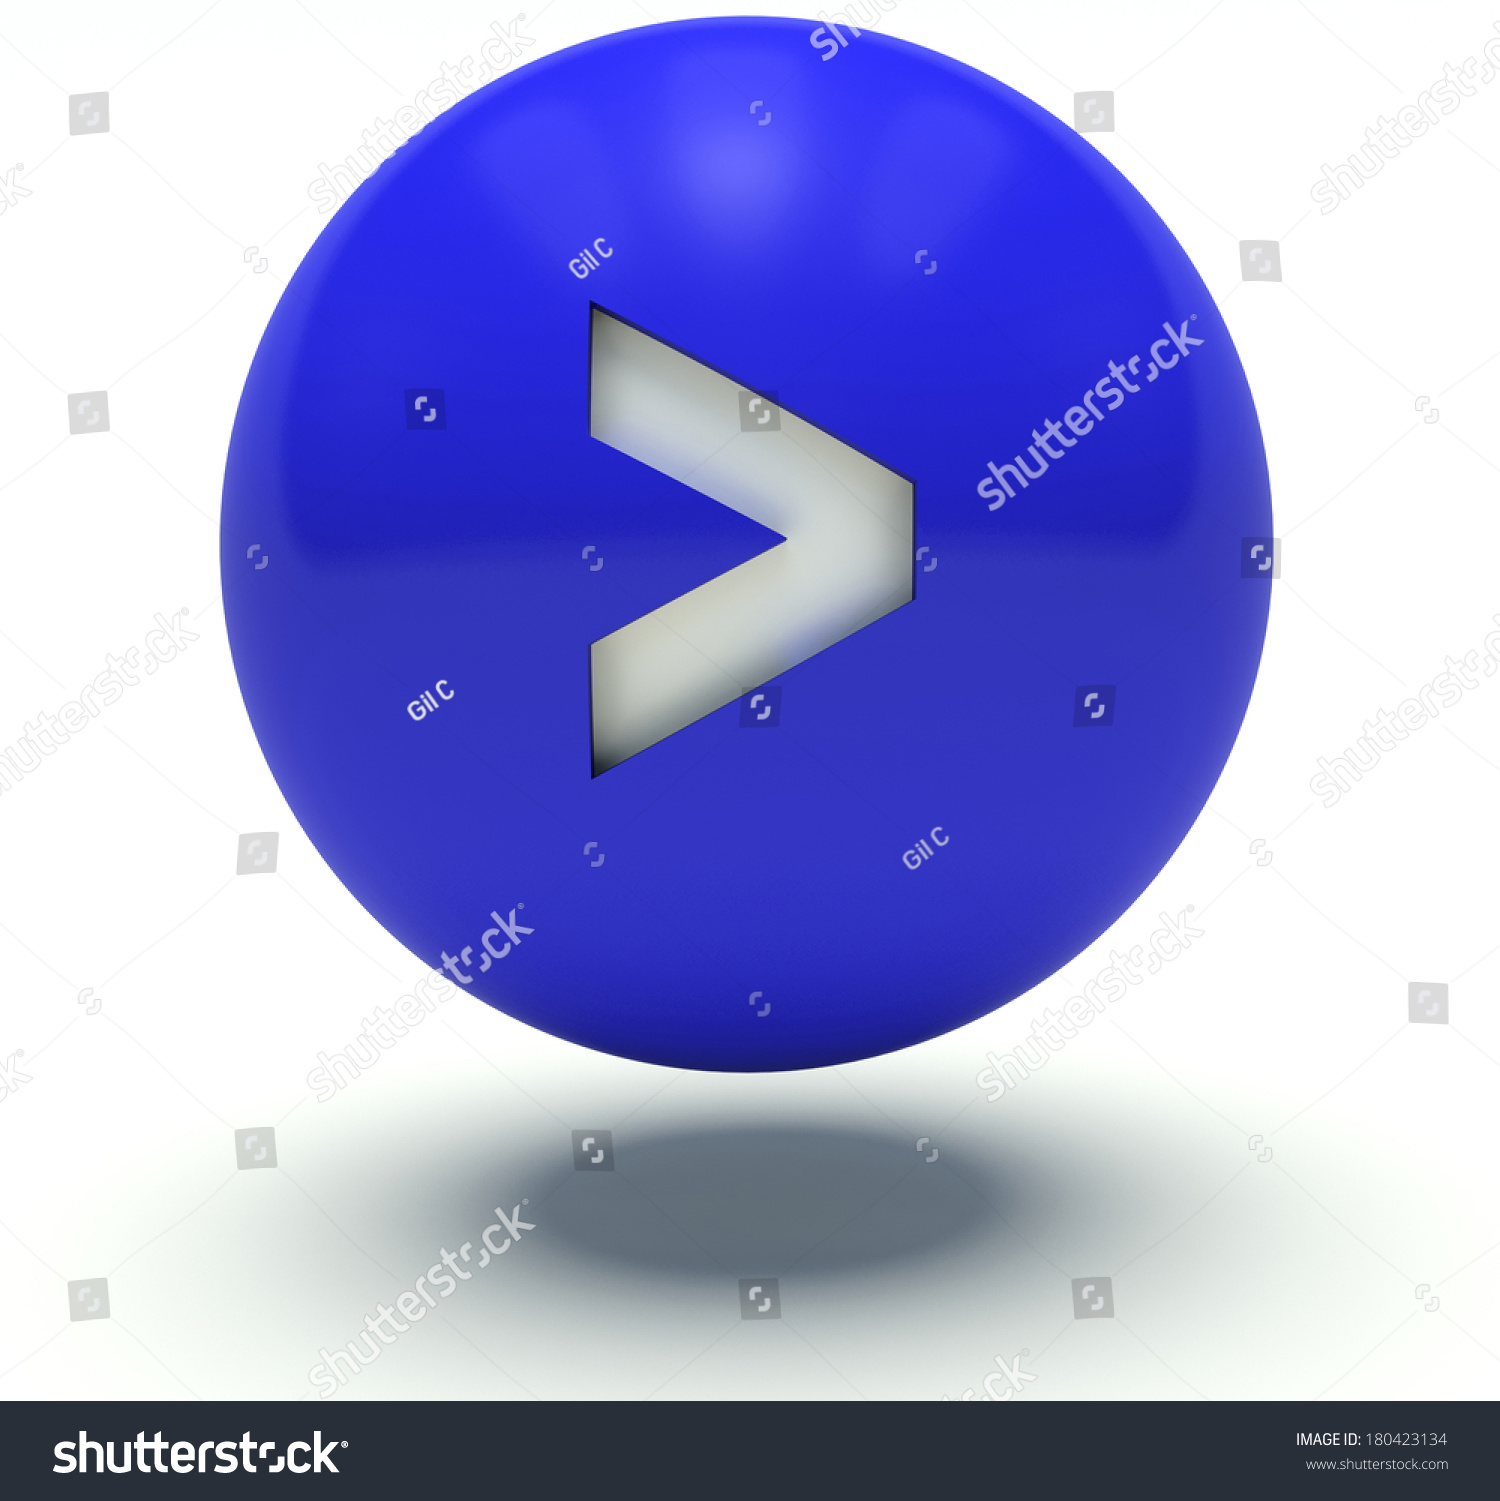 Blue ball greaterthan sign 3d render stock illustration 180423134 blue ball greater than sign 3d render illustration biocorpaavc Images